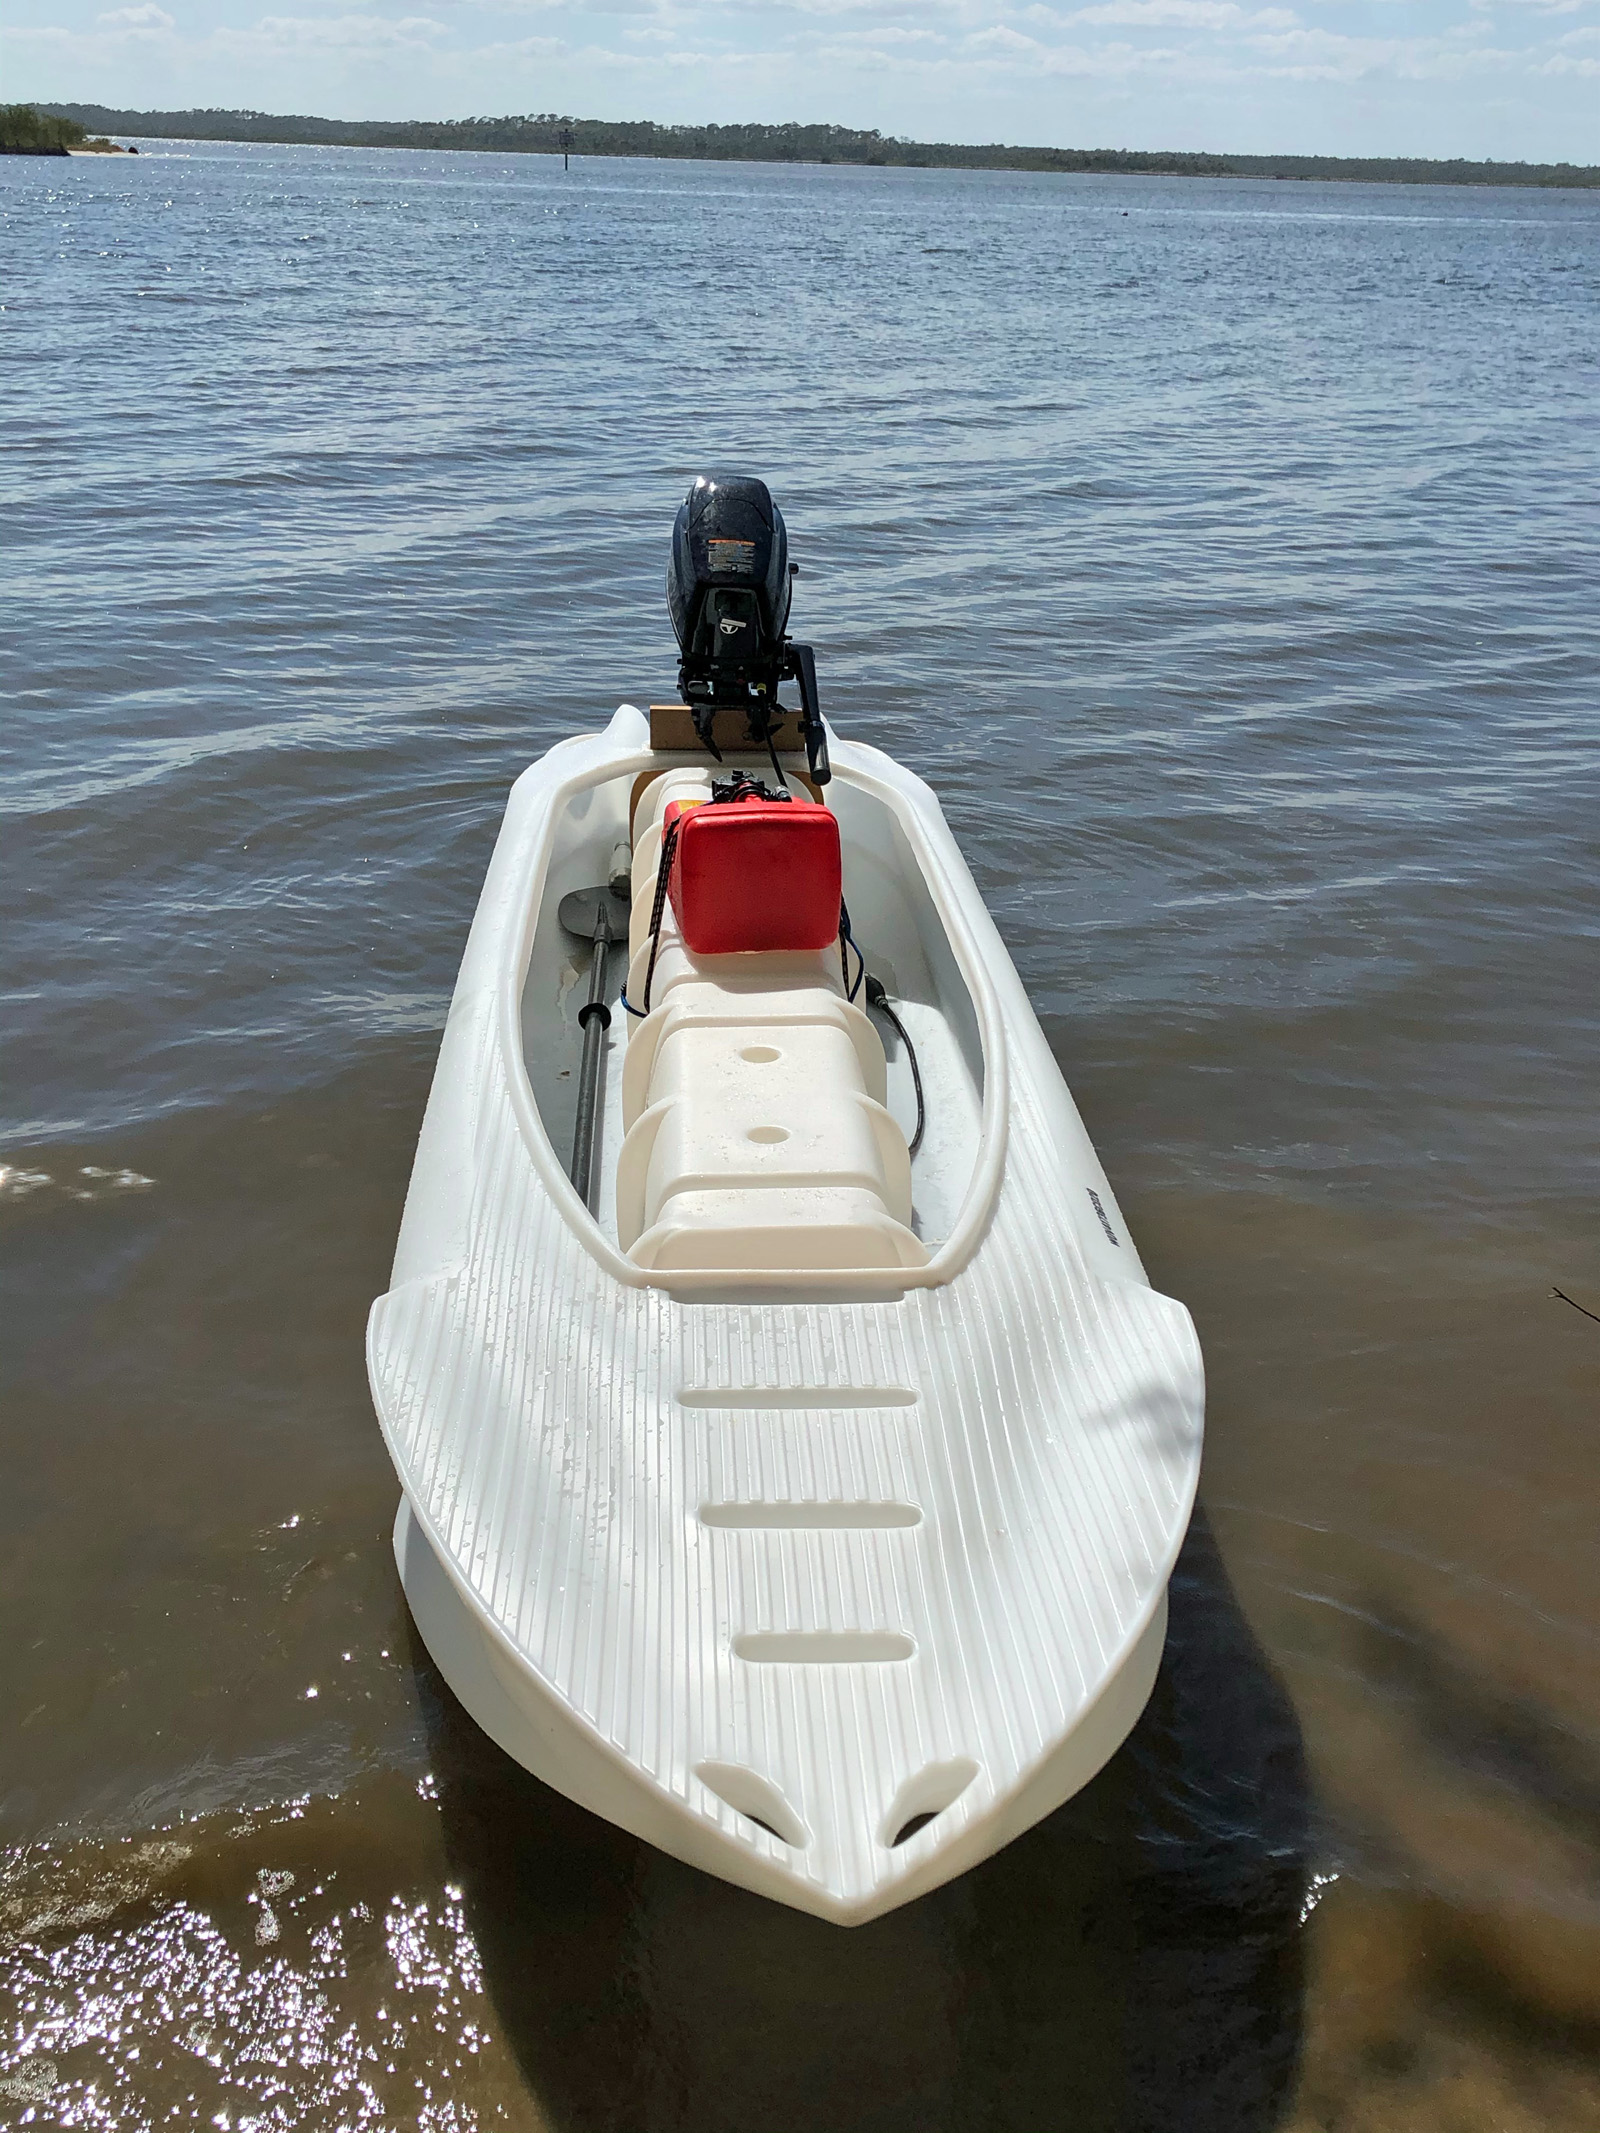 Wavewalk S4 motor kayak microskiff with 6HP Tohatsu outboard